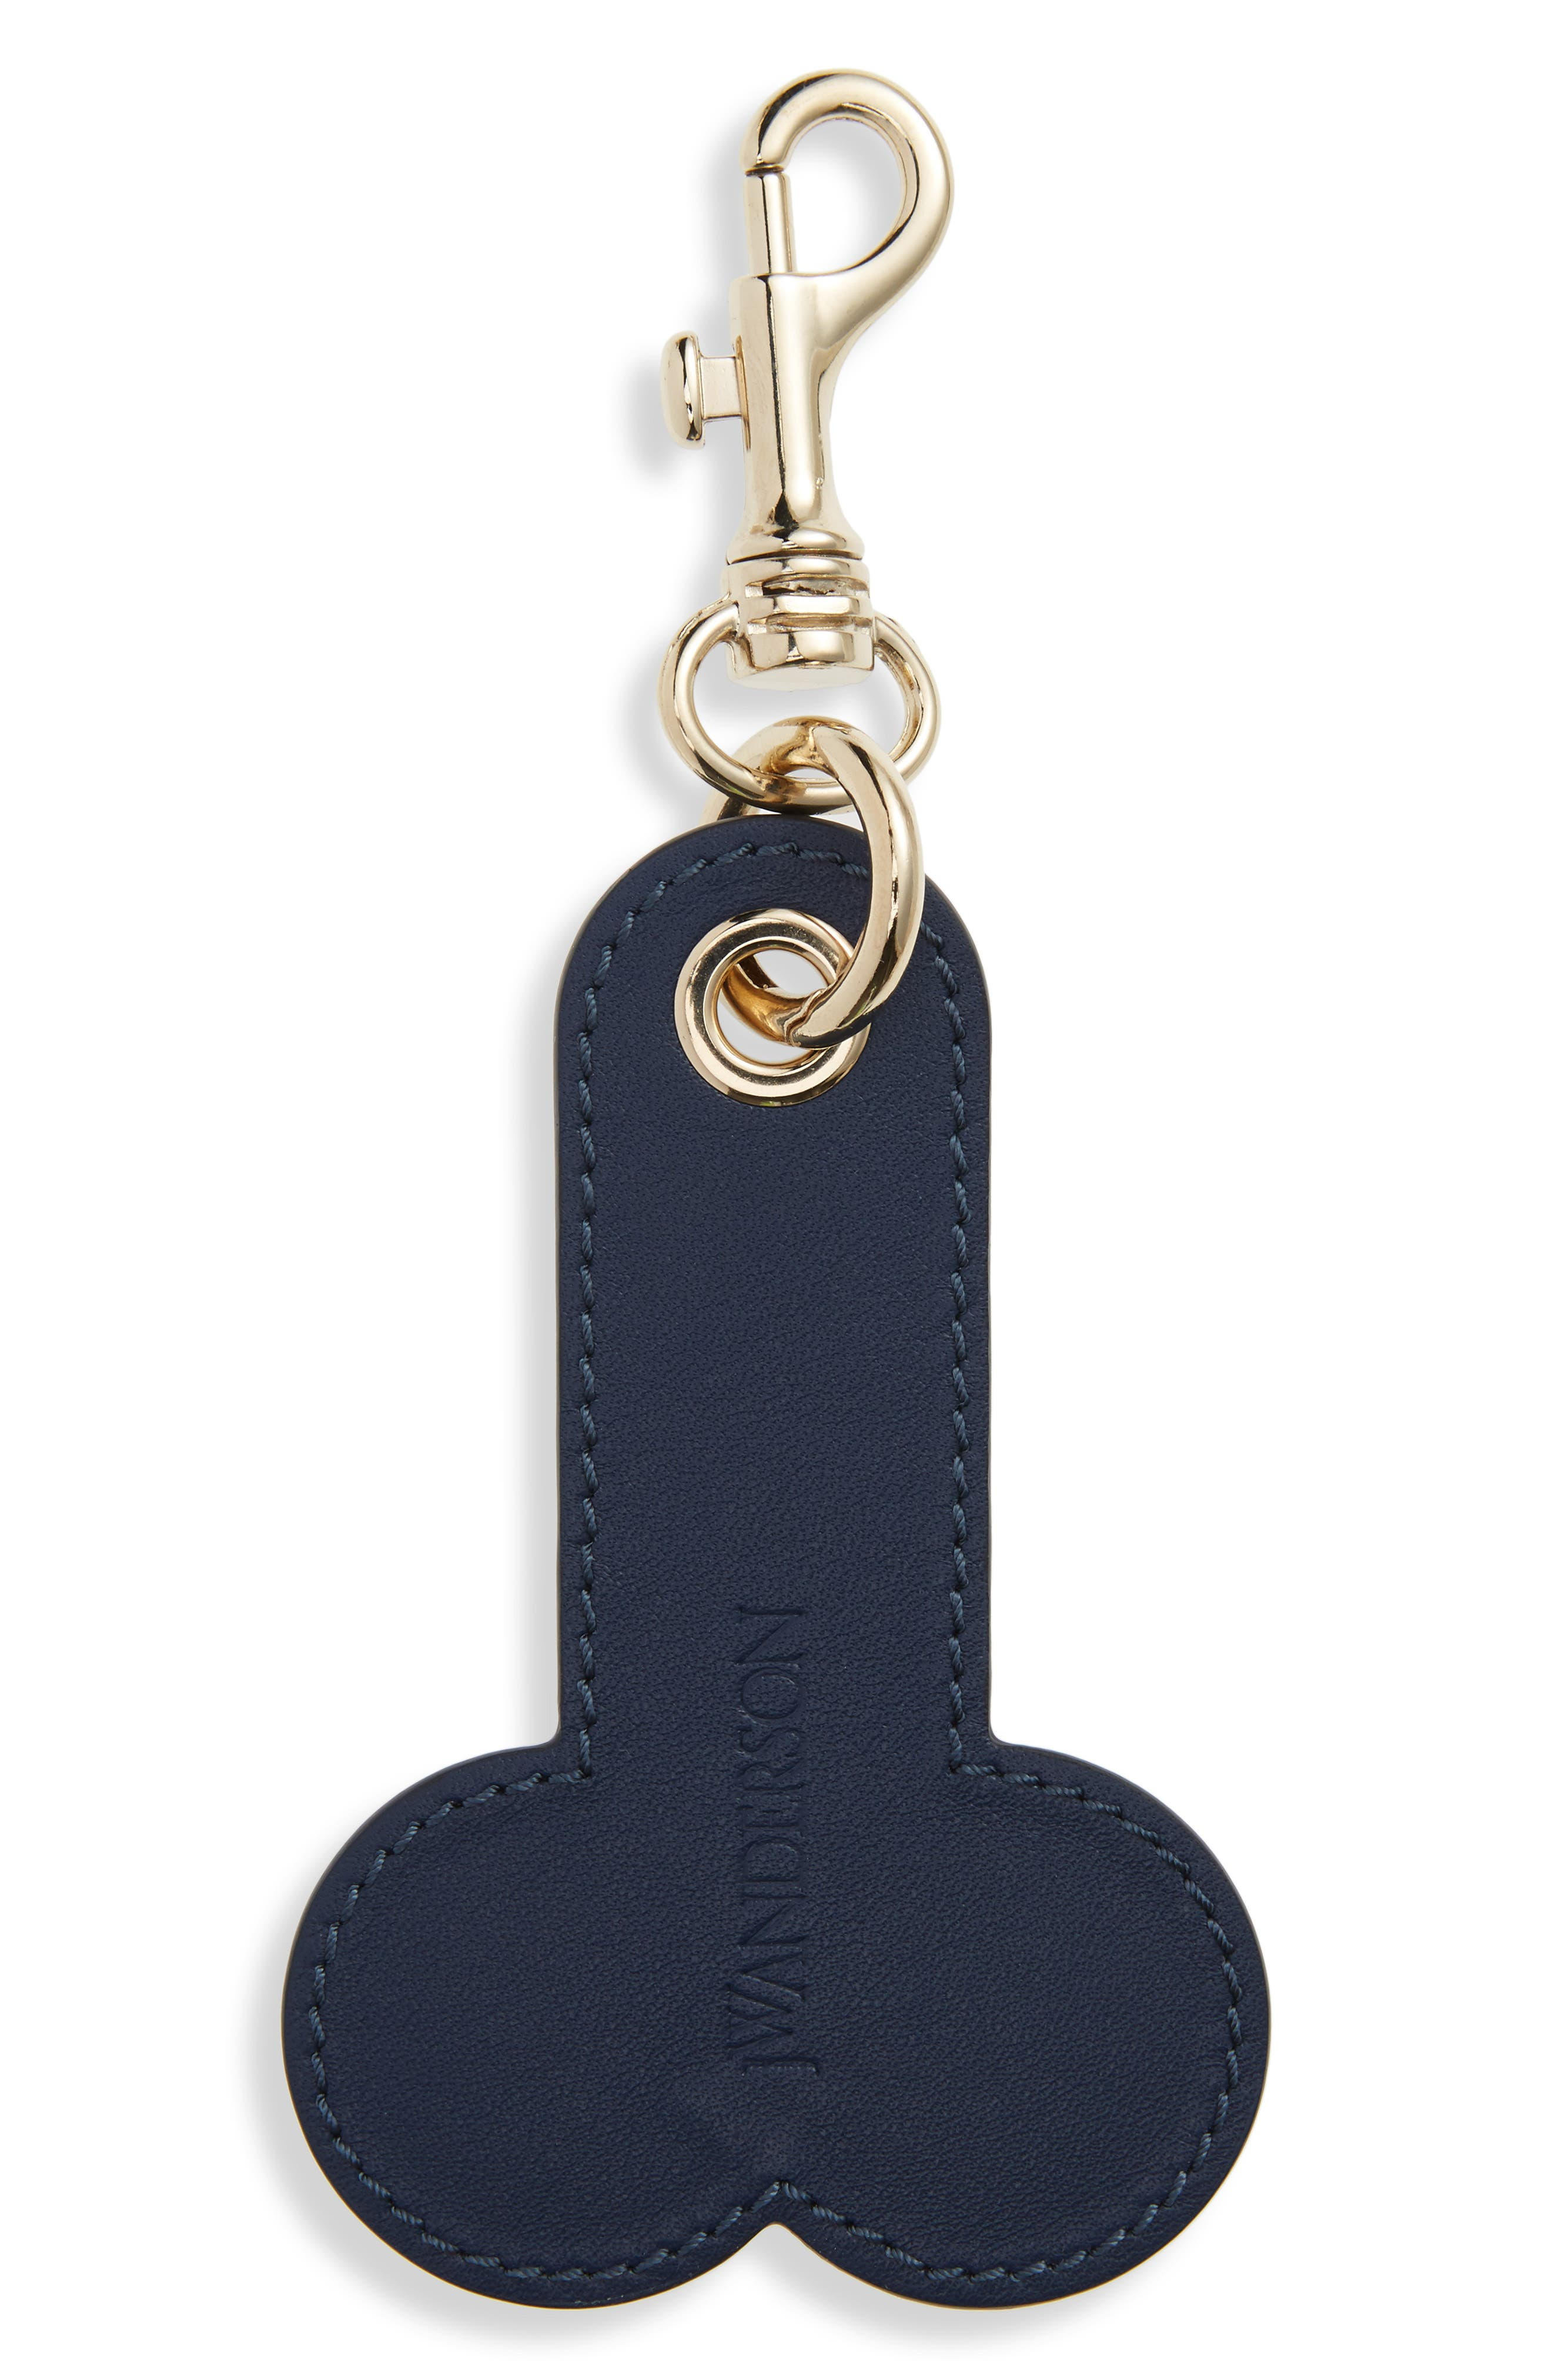 Main Image - J.W.ANDERSON Logo Embossed Leather Bag Charm